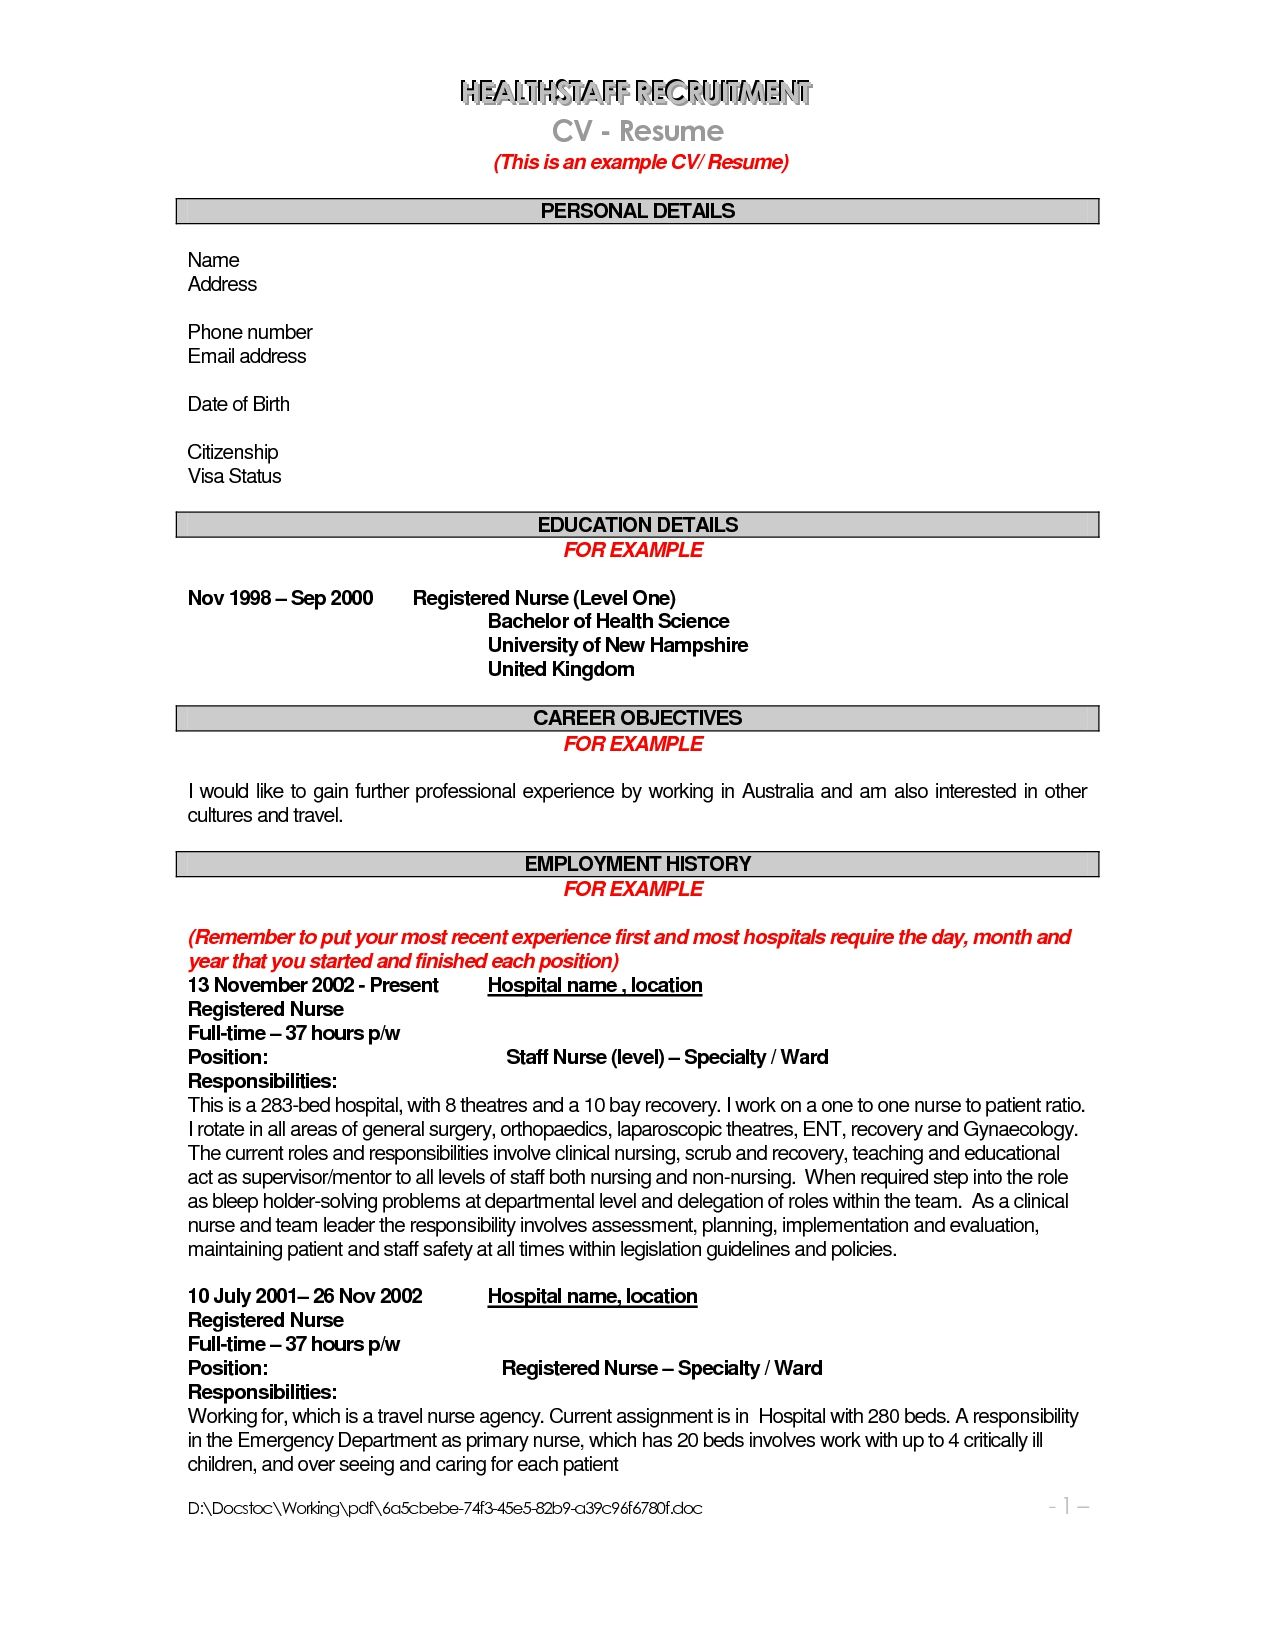 simple job description template